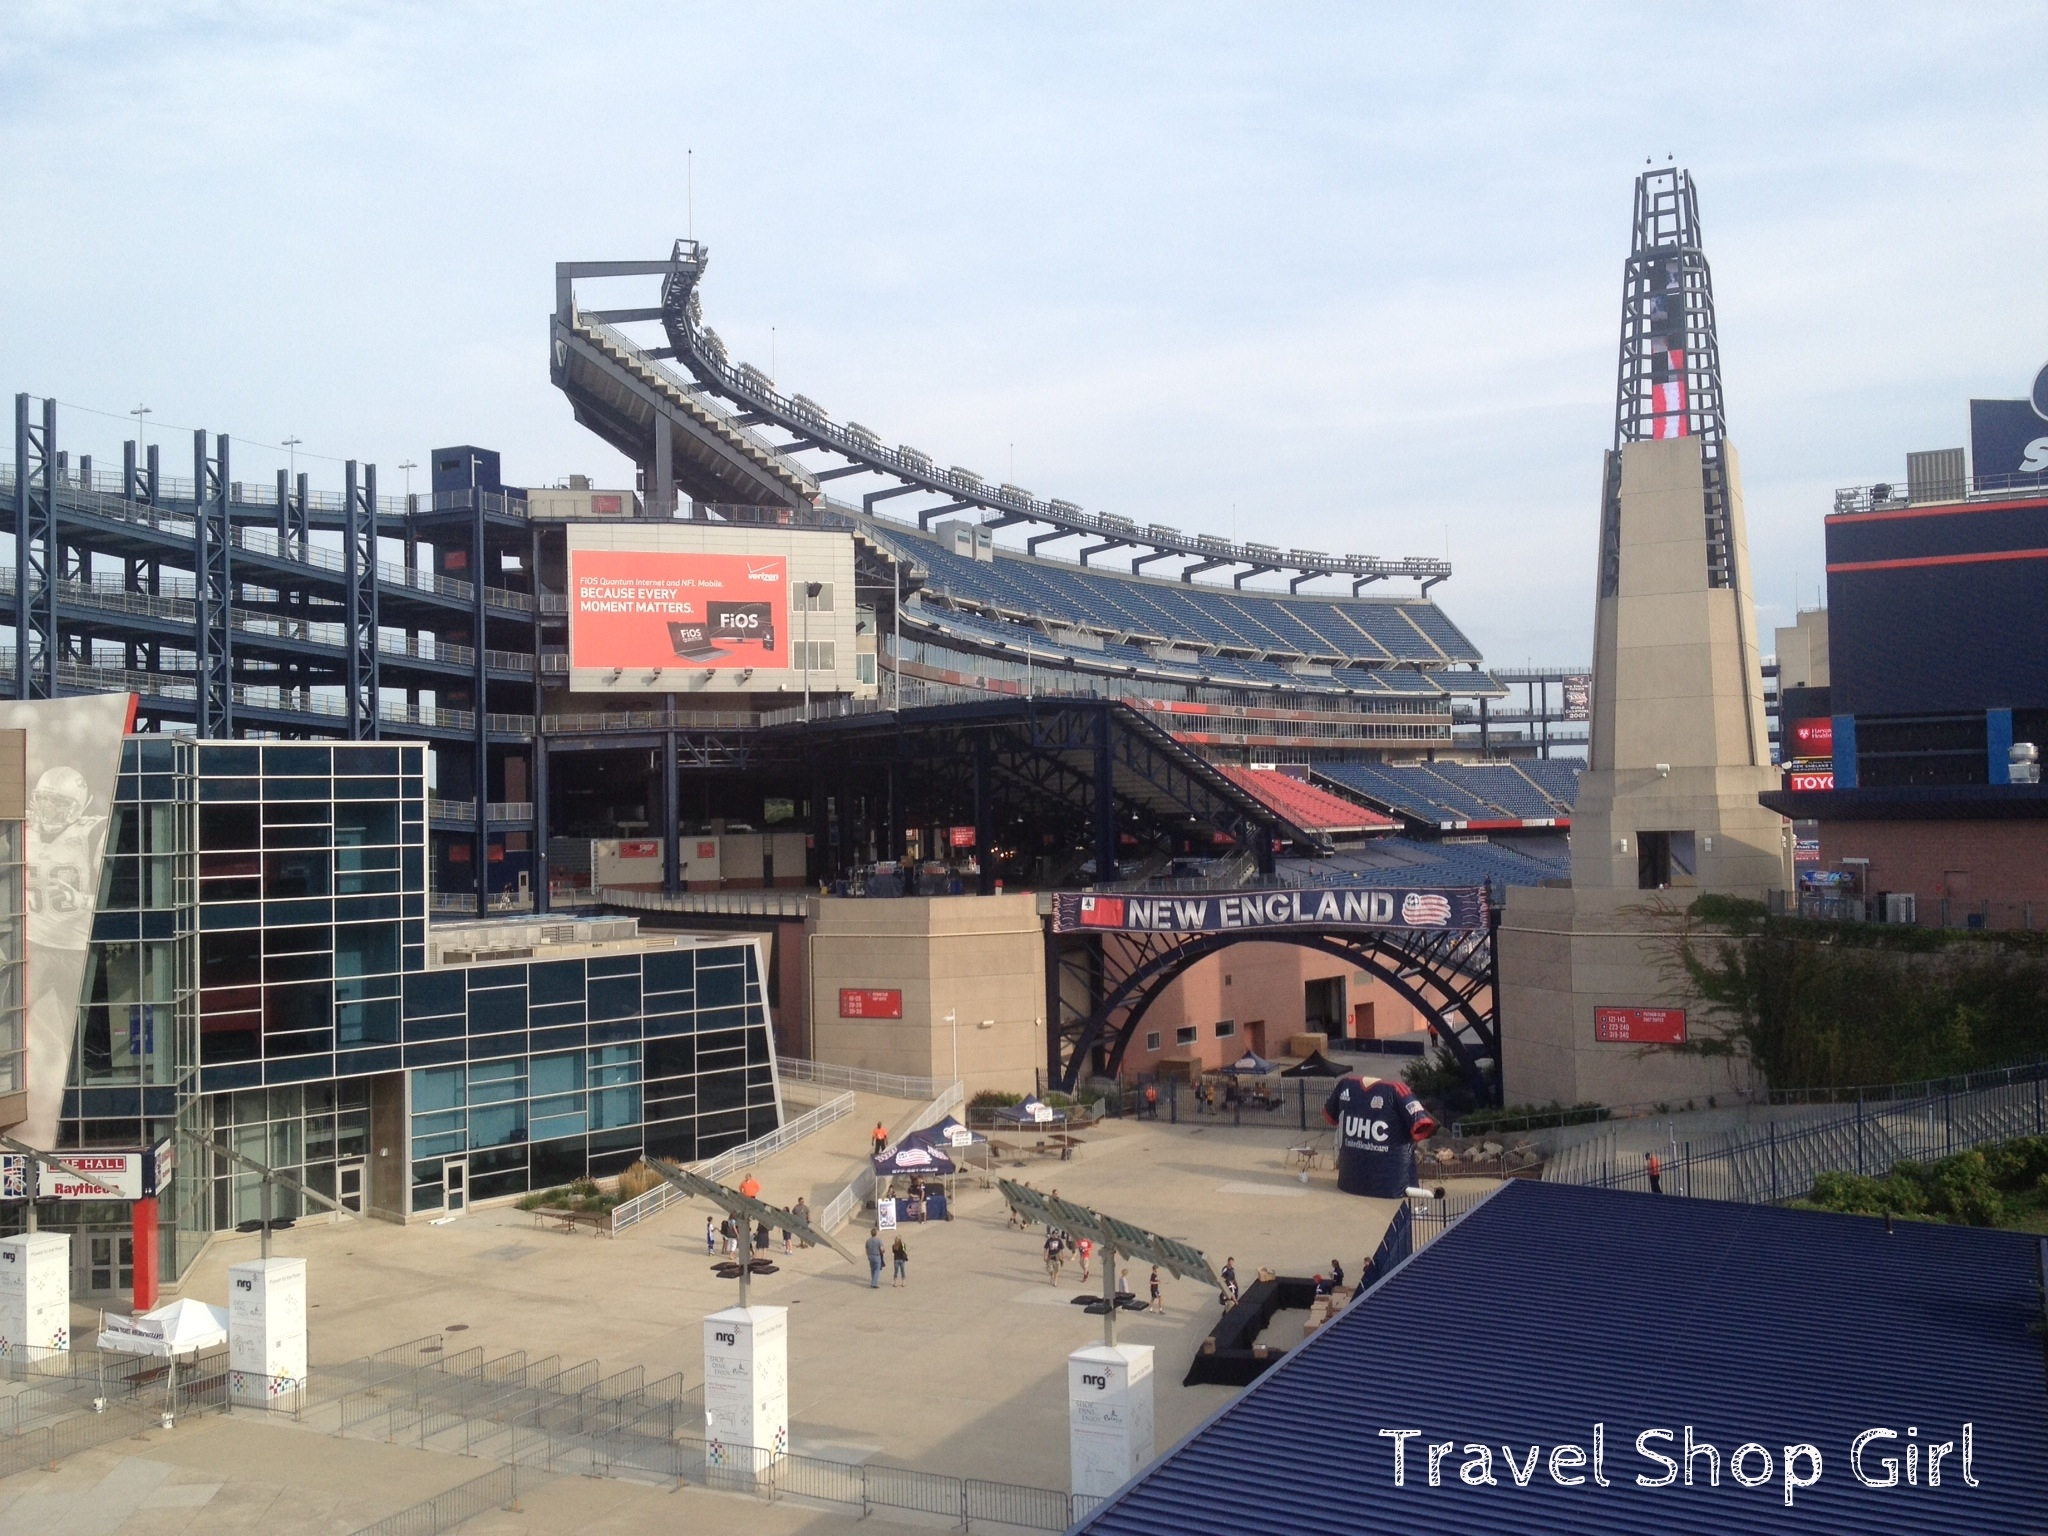 Hotels Near Gillette Stadium With Shuttle Service